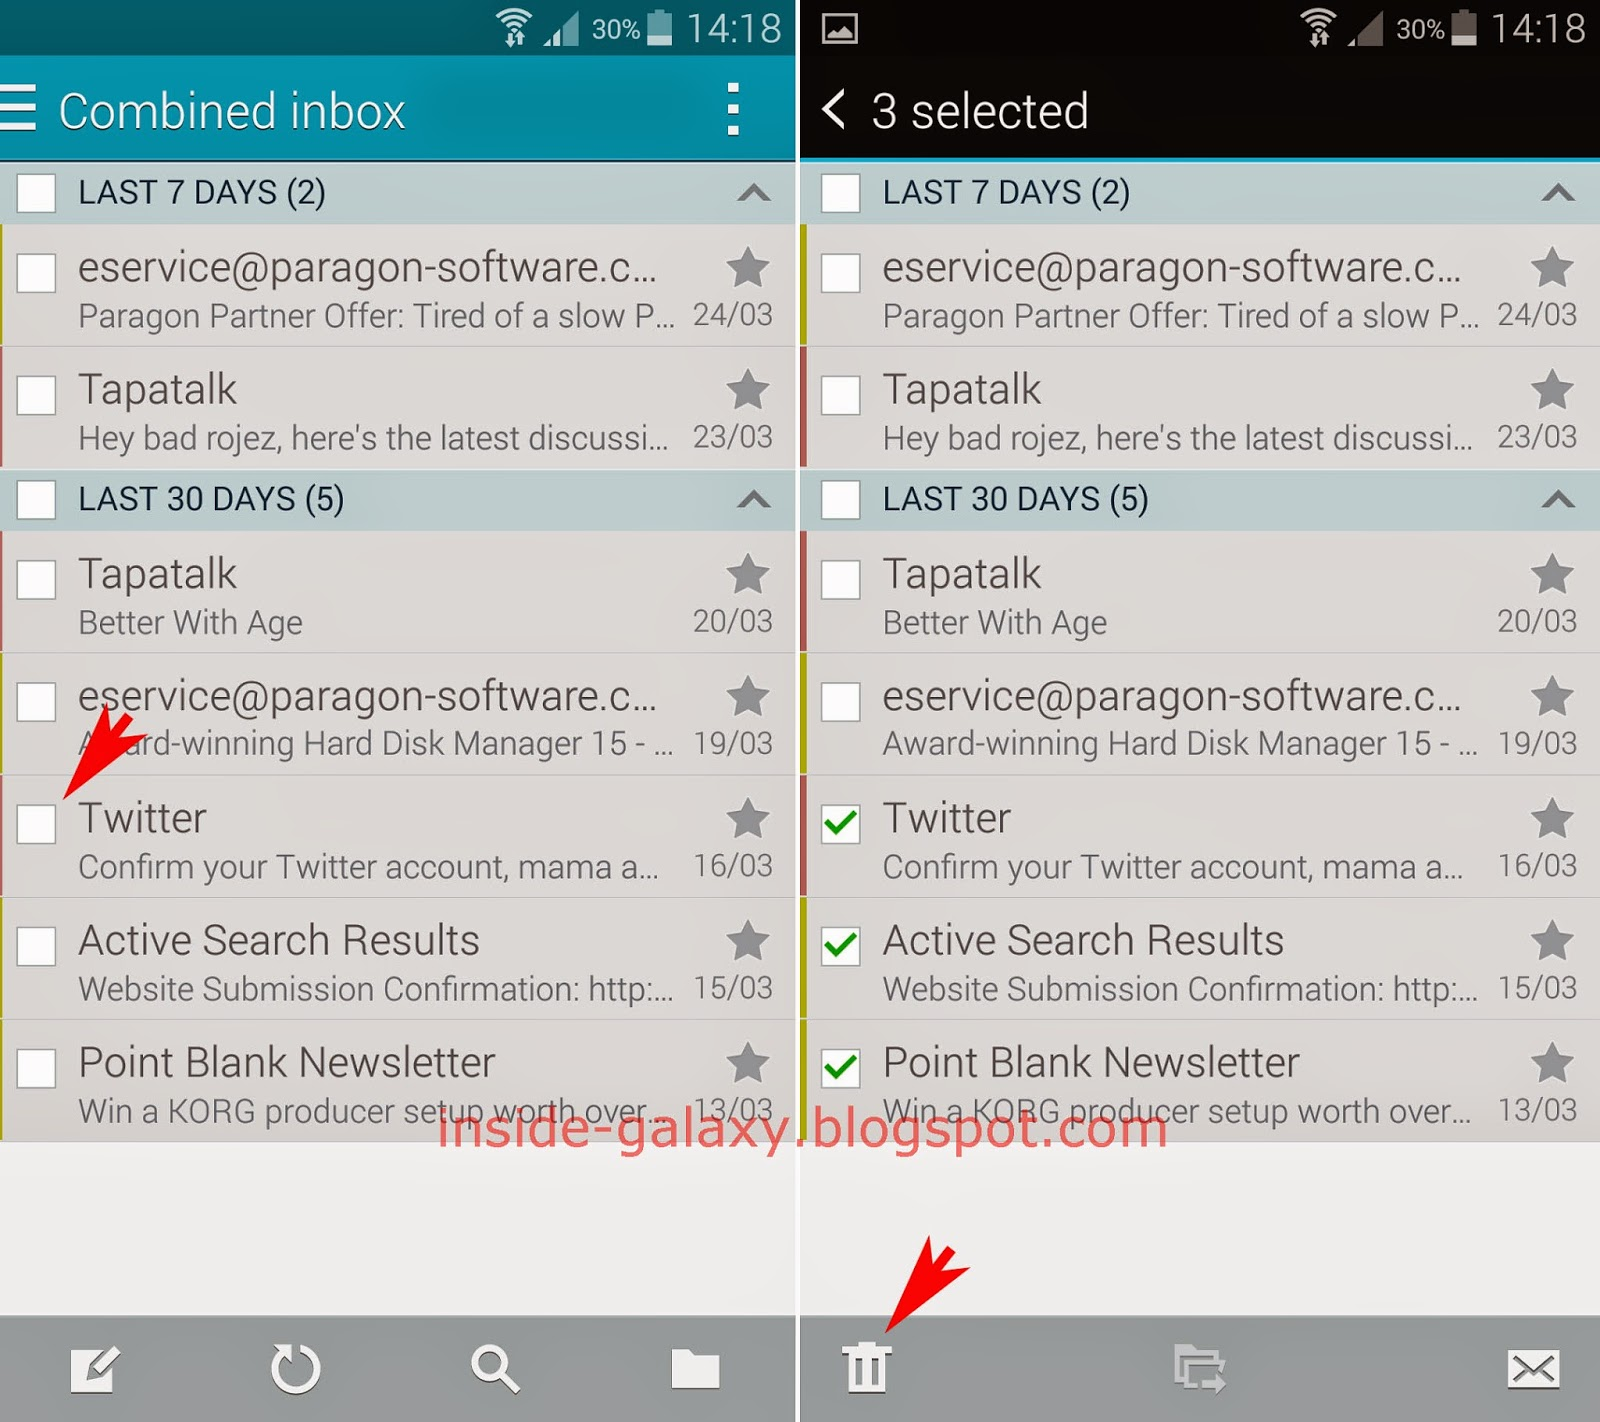 Samsung Galaxy S5: How to Delete Email Messages in the Stock